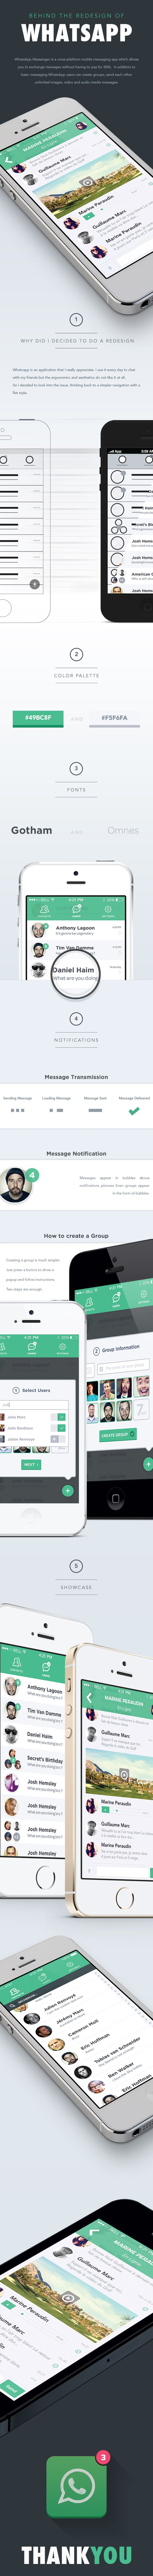 Whatsapp Redesign by Guillaume Marc, via Behance